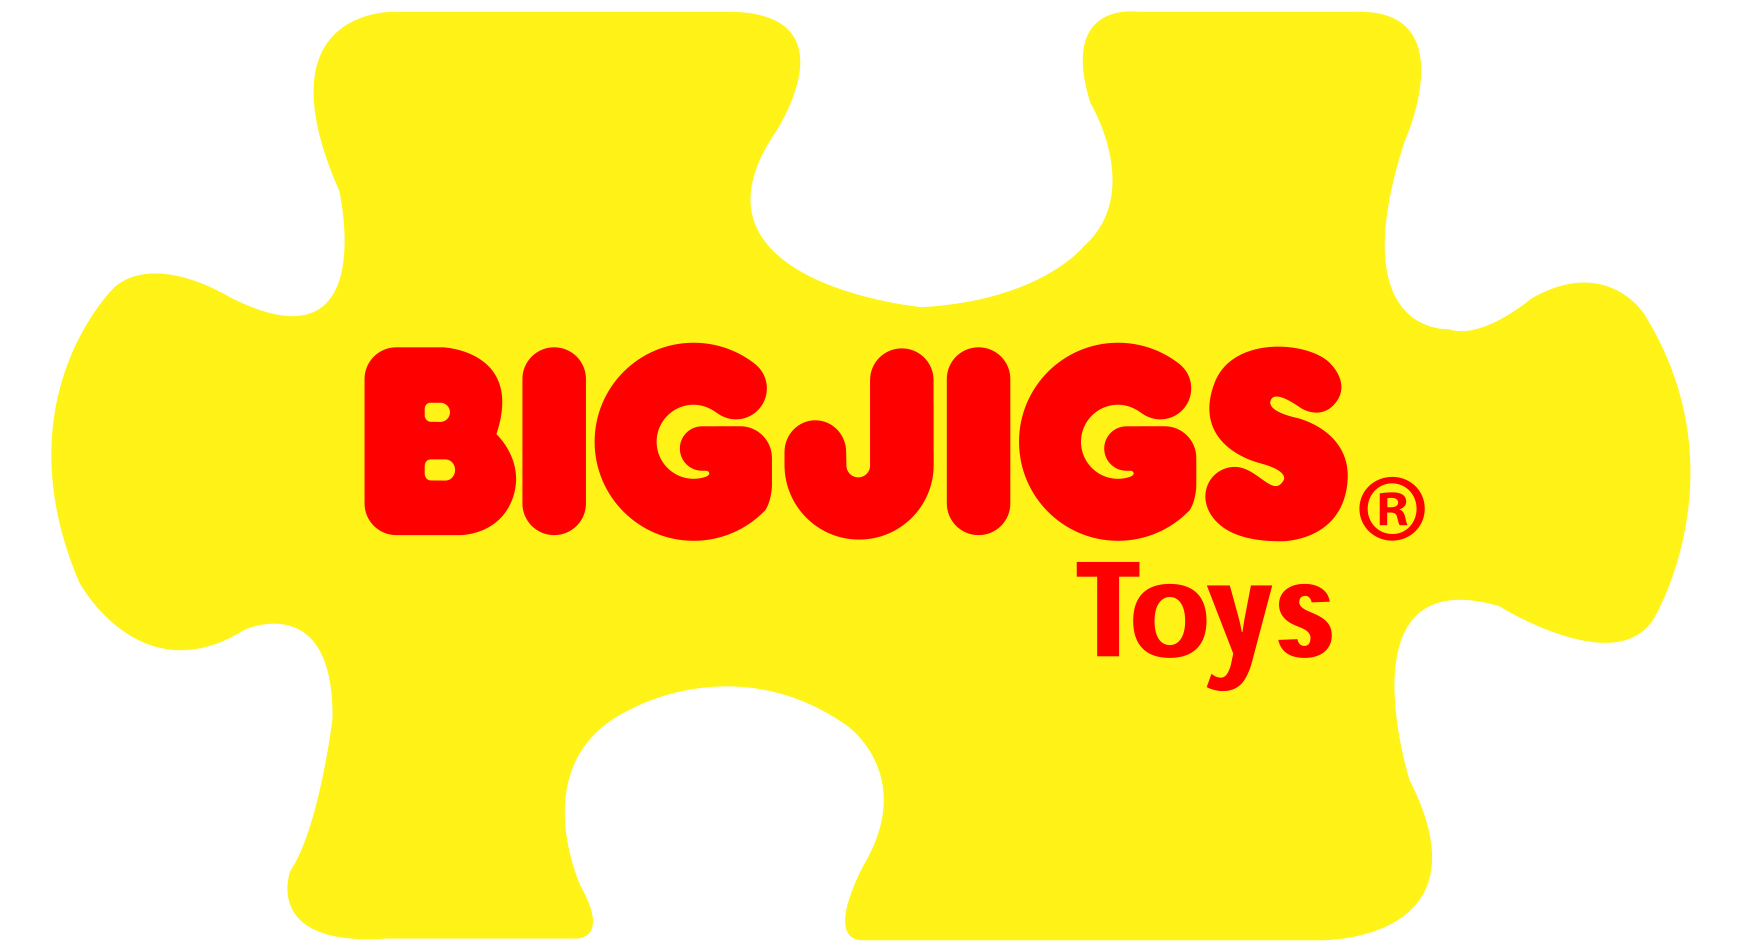 Big Jigs Toys Ltd